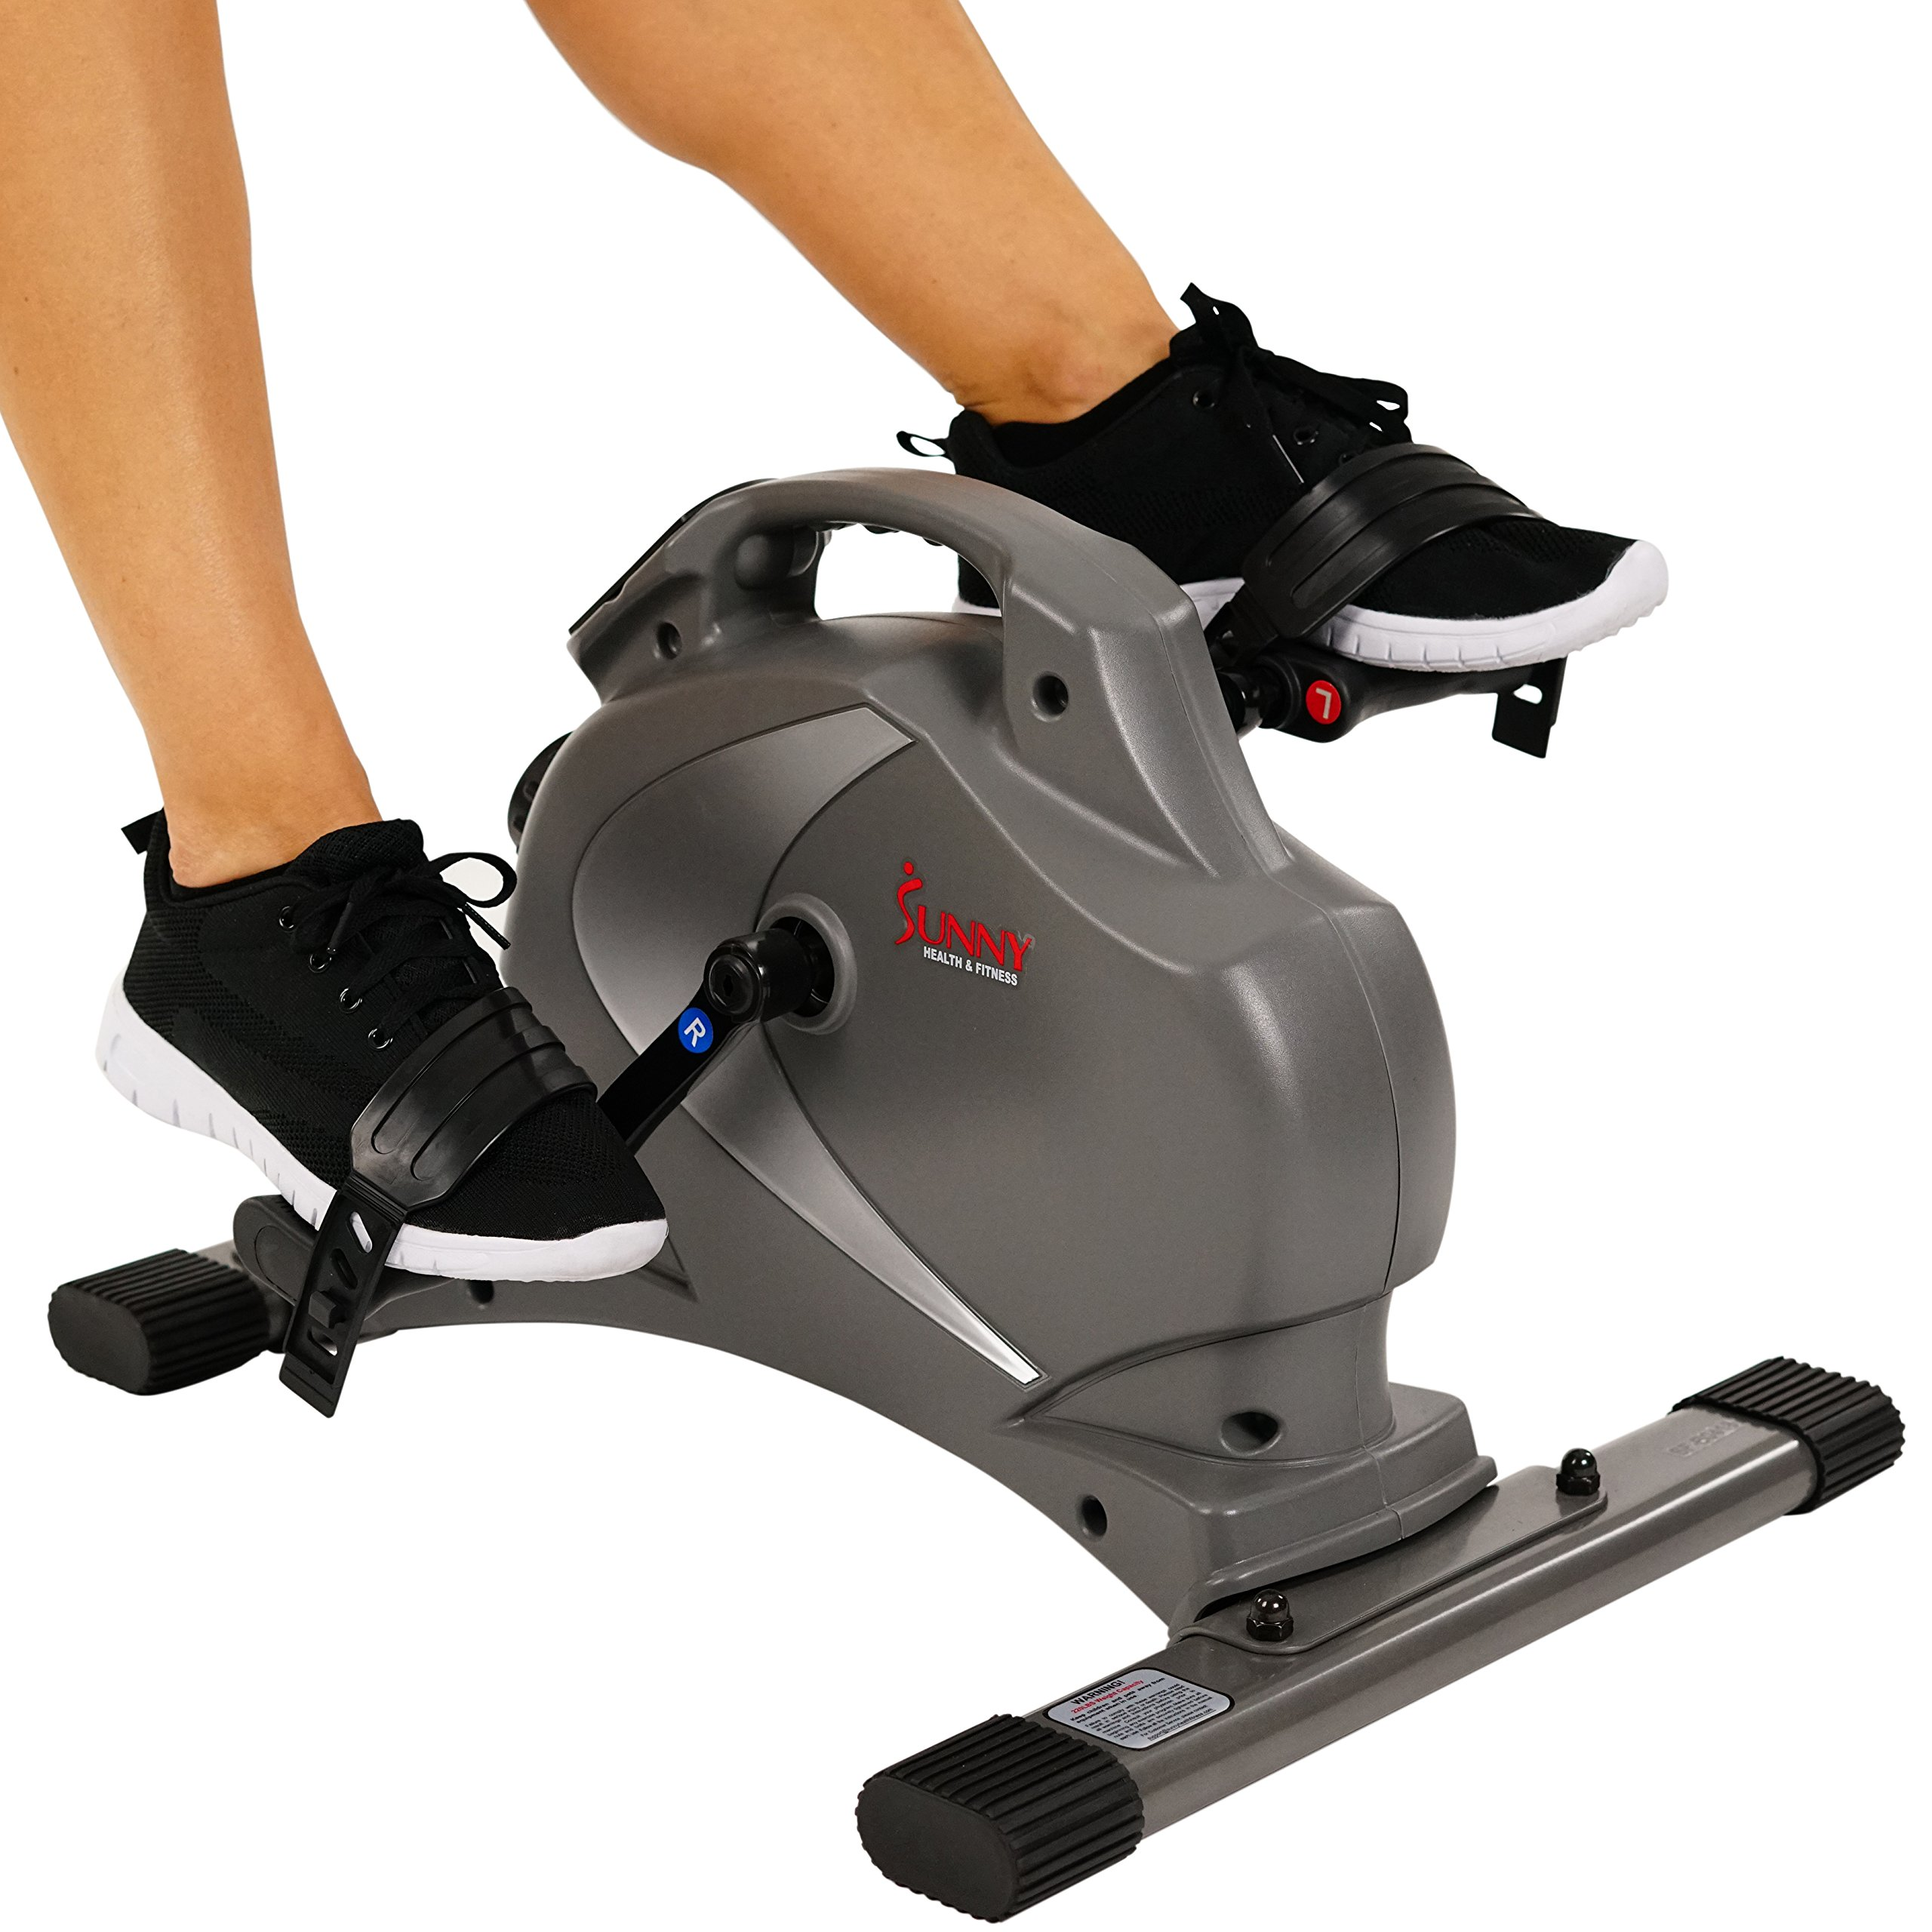 Sunny Health & Fitness SF-B0418 Magnetic Mini Exercise Bike, Gray by Sunny Health & Fitness